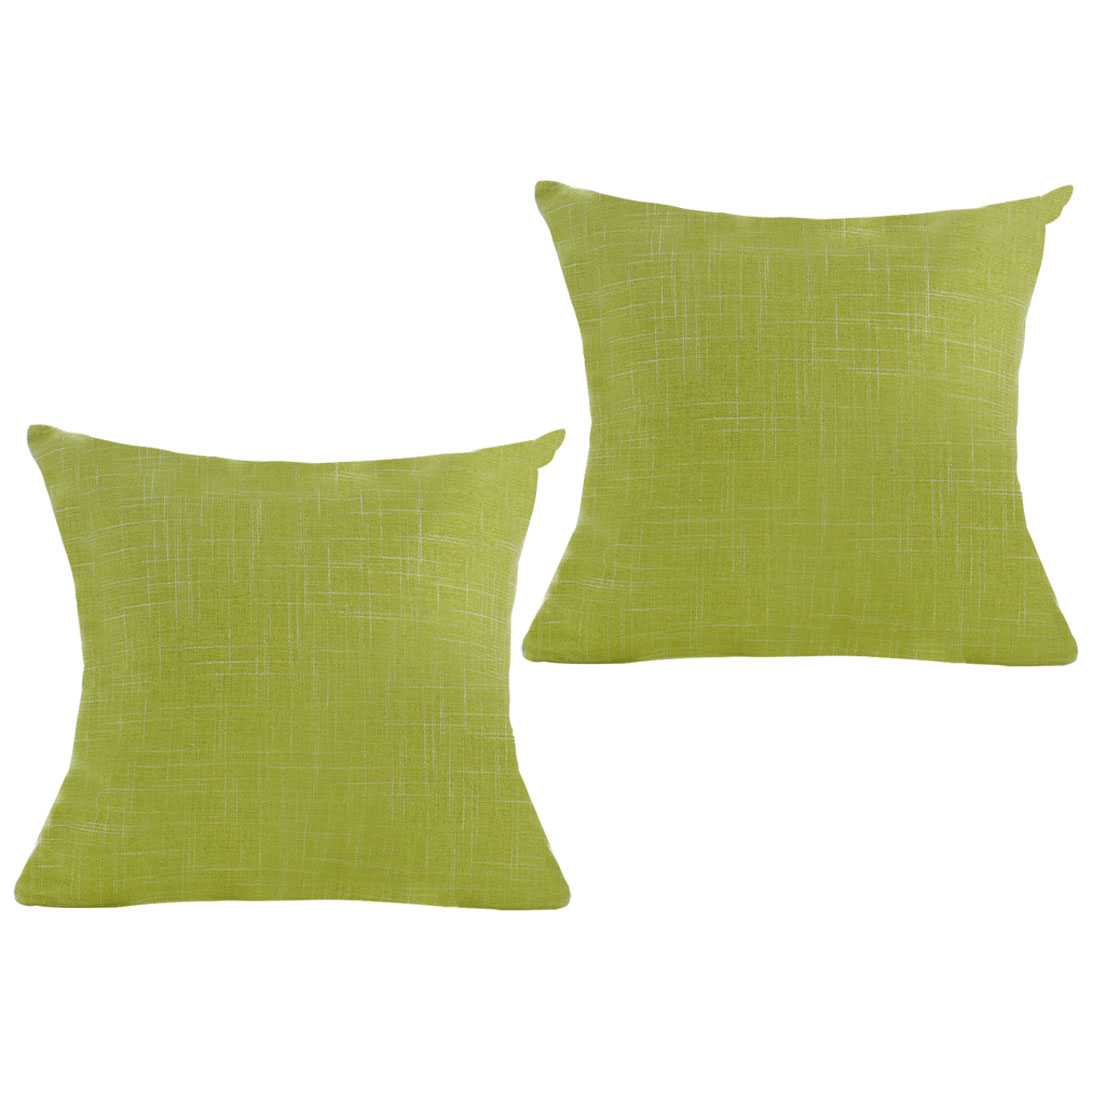 Decorative Square Throw Linen Cushion Cover Case 18 x 18 Inch Green Set of 2 - image 7 de 7